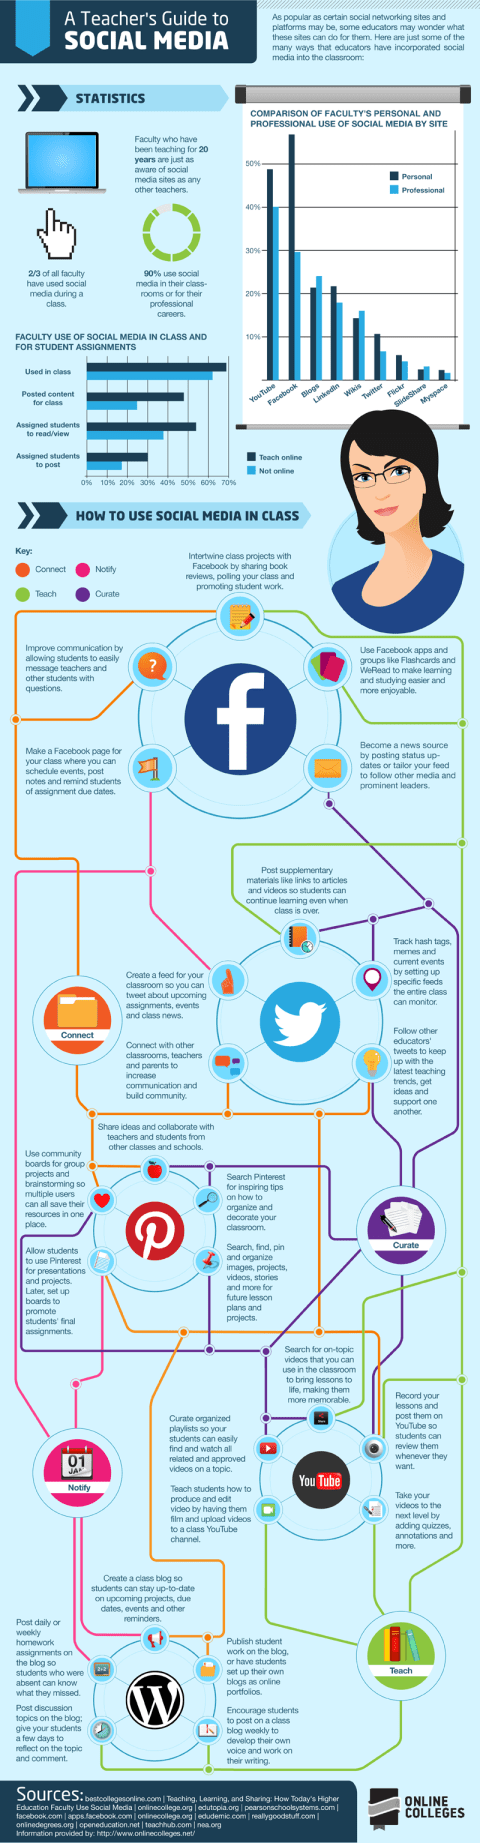 Teachers Guide to Social Media Infographic